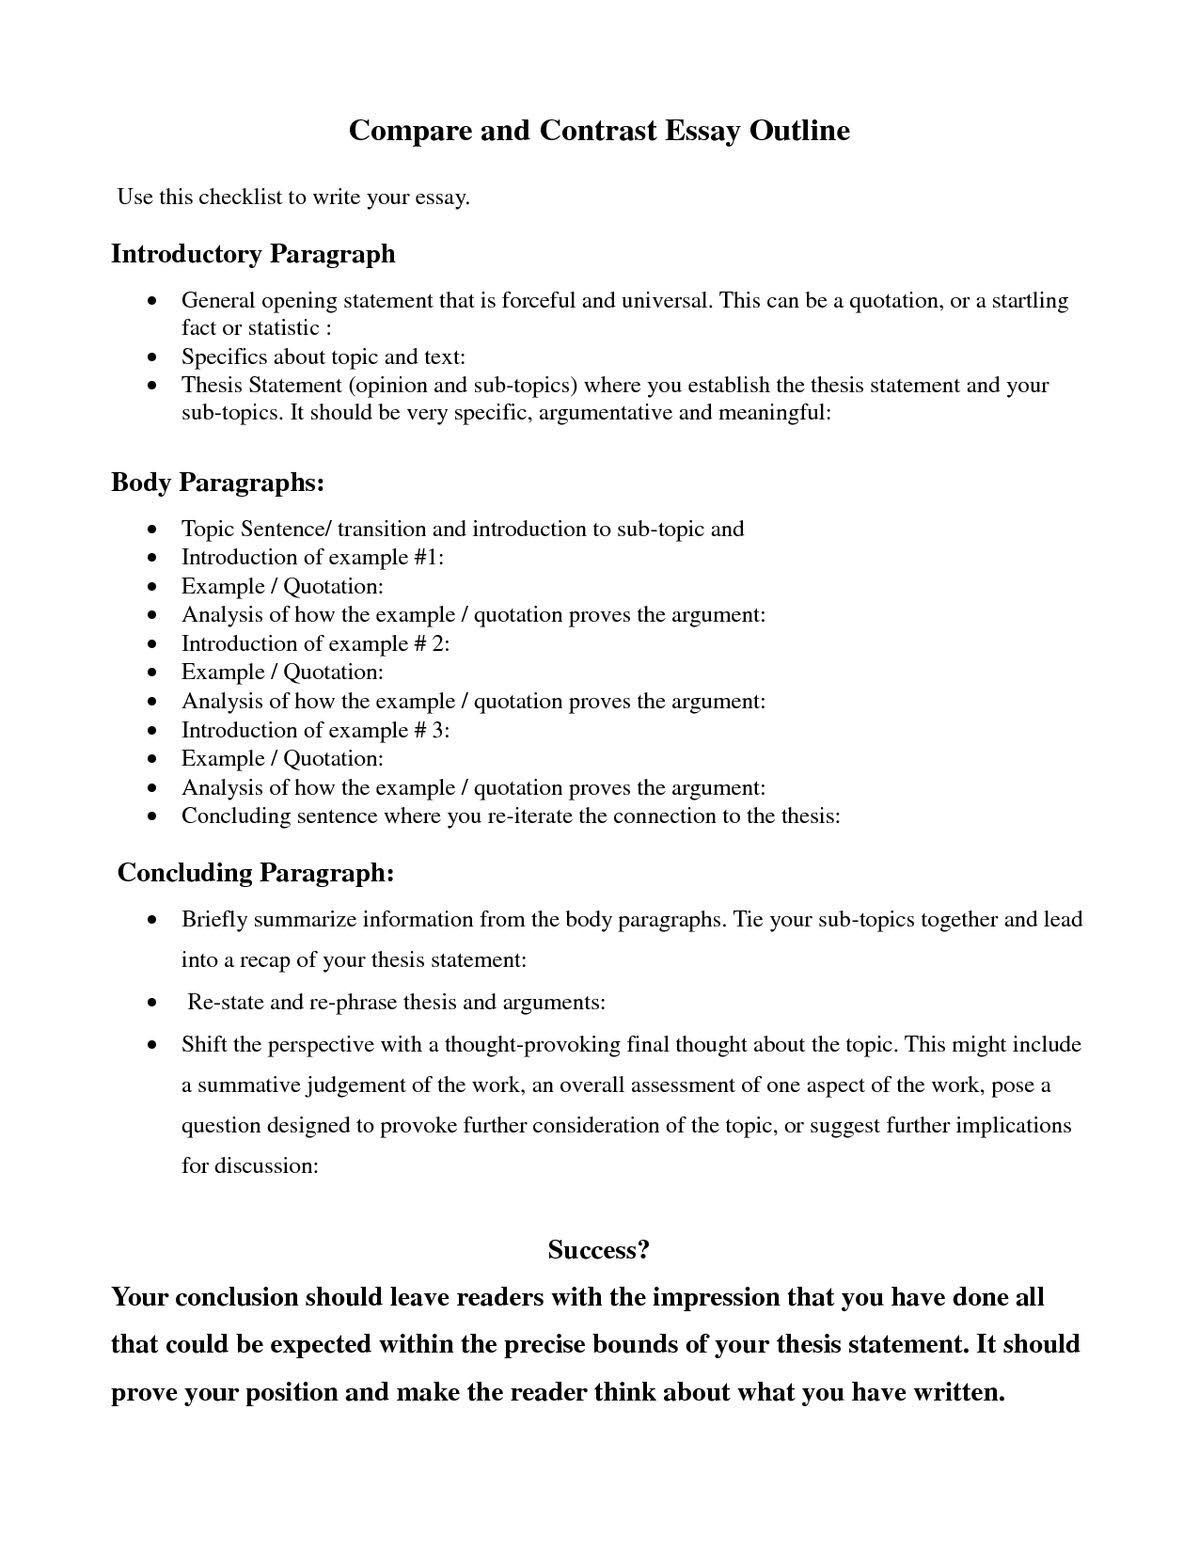 Pin By Aimee Cover On Classroom Essay Outline Thesi Statement Questions Definition Of Analytical